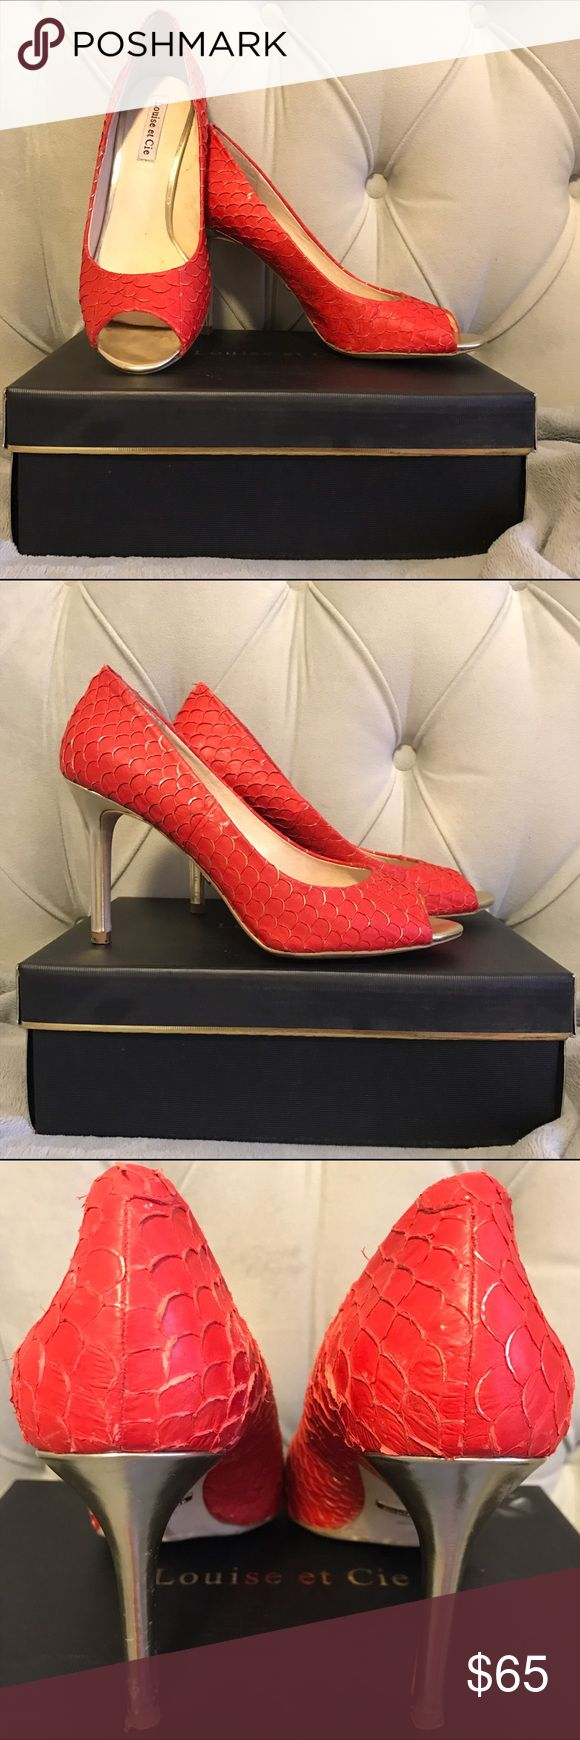 Louise et Cie Lo-Scorpio Peep Toe Gorgeous open toe pumps. Red with golden heel and golden accent on the fish scale texture. Left shoe has scuff at the bottom of the heel. With Box. Louise et Cie Shoes Heels